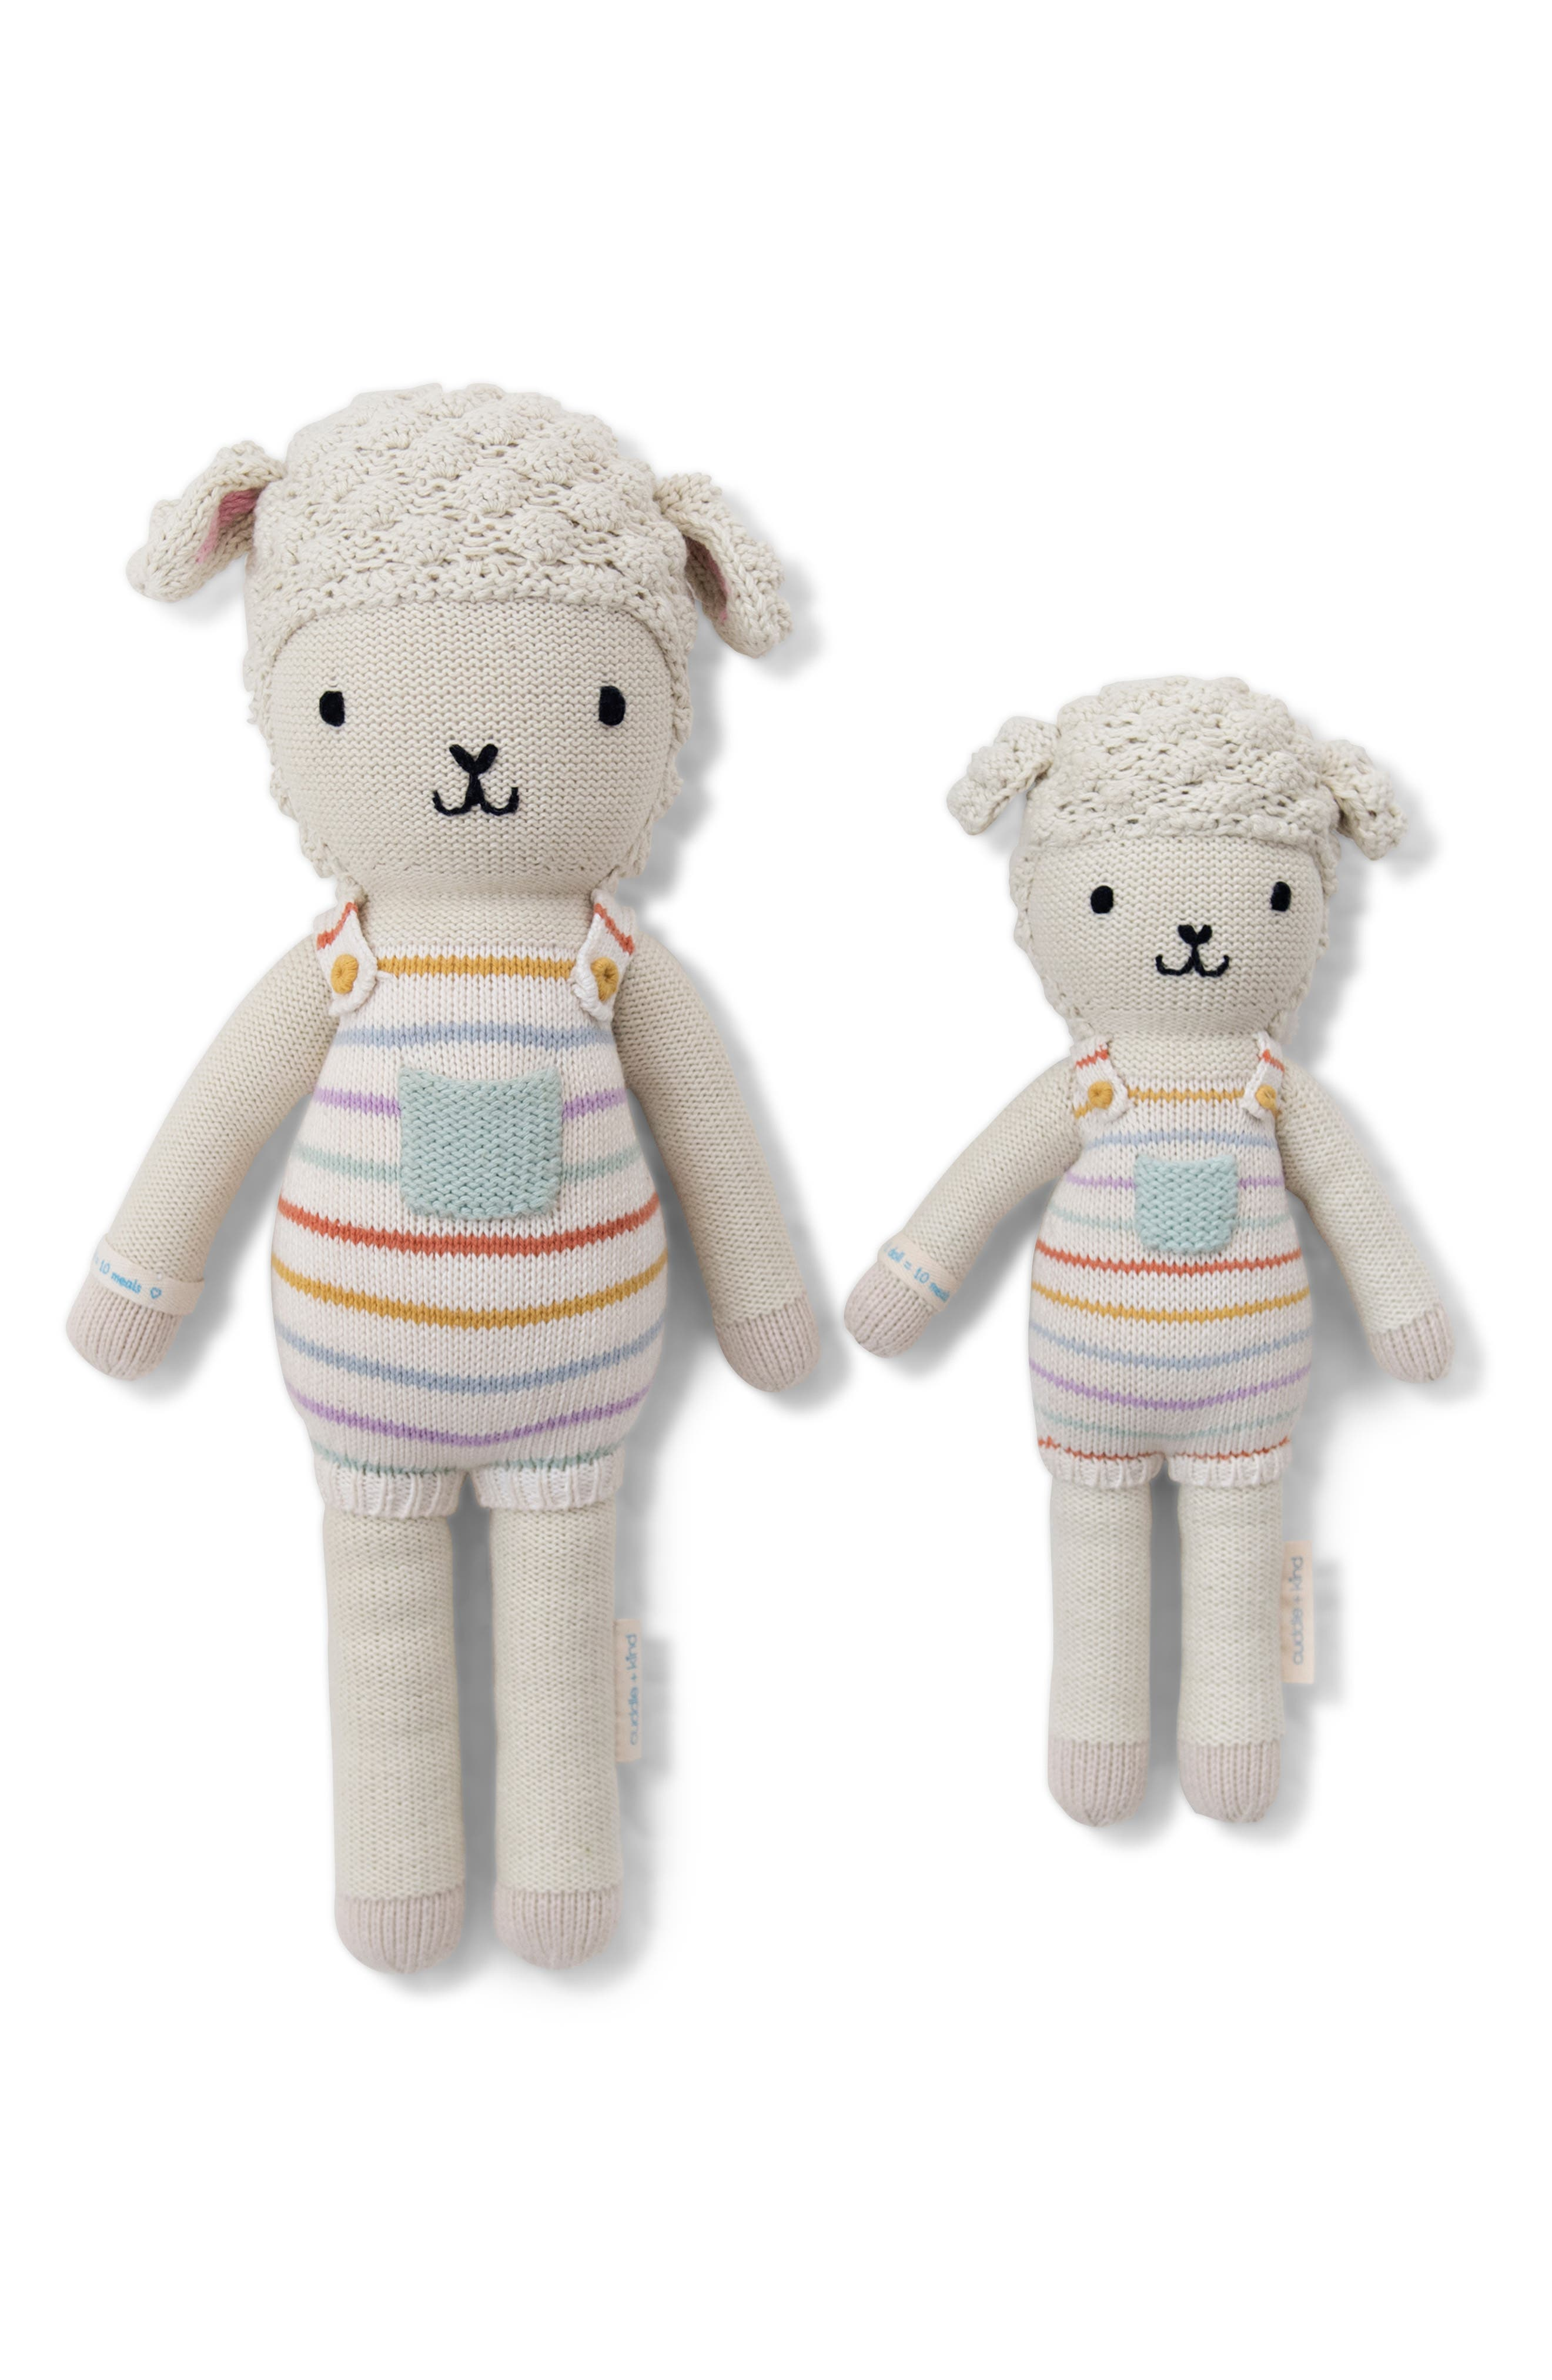 cuddle + kind Avery the Lamb Stuffed Animal,                             Main thumbnail 1, color,                             100